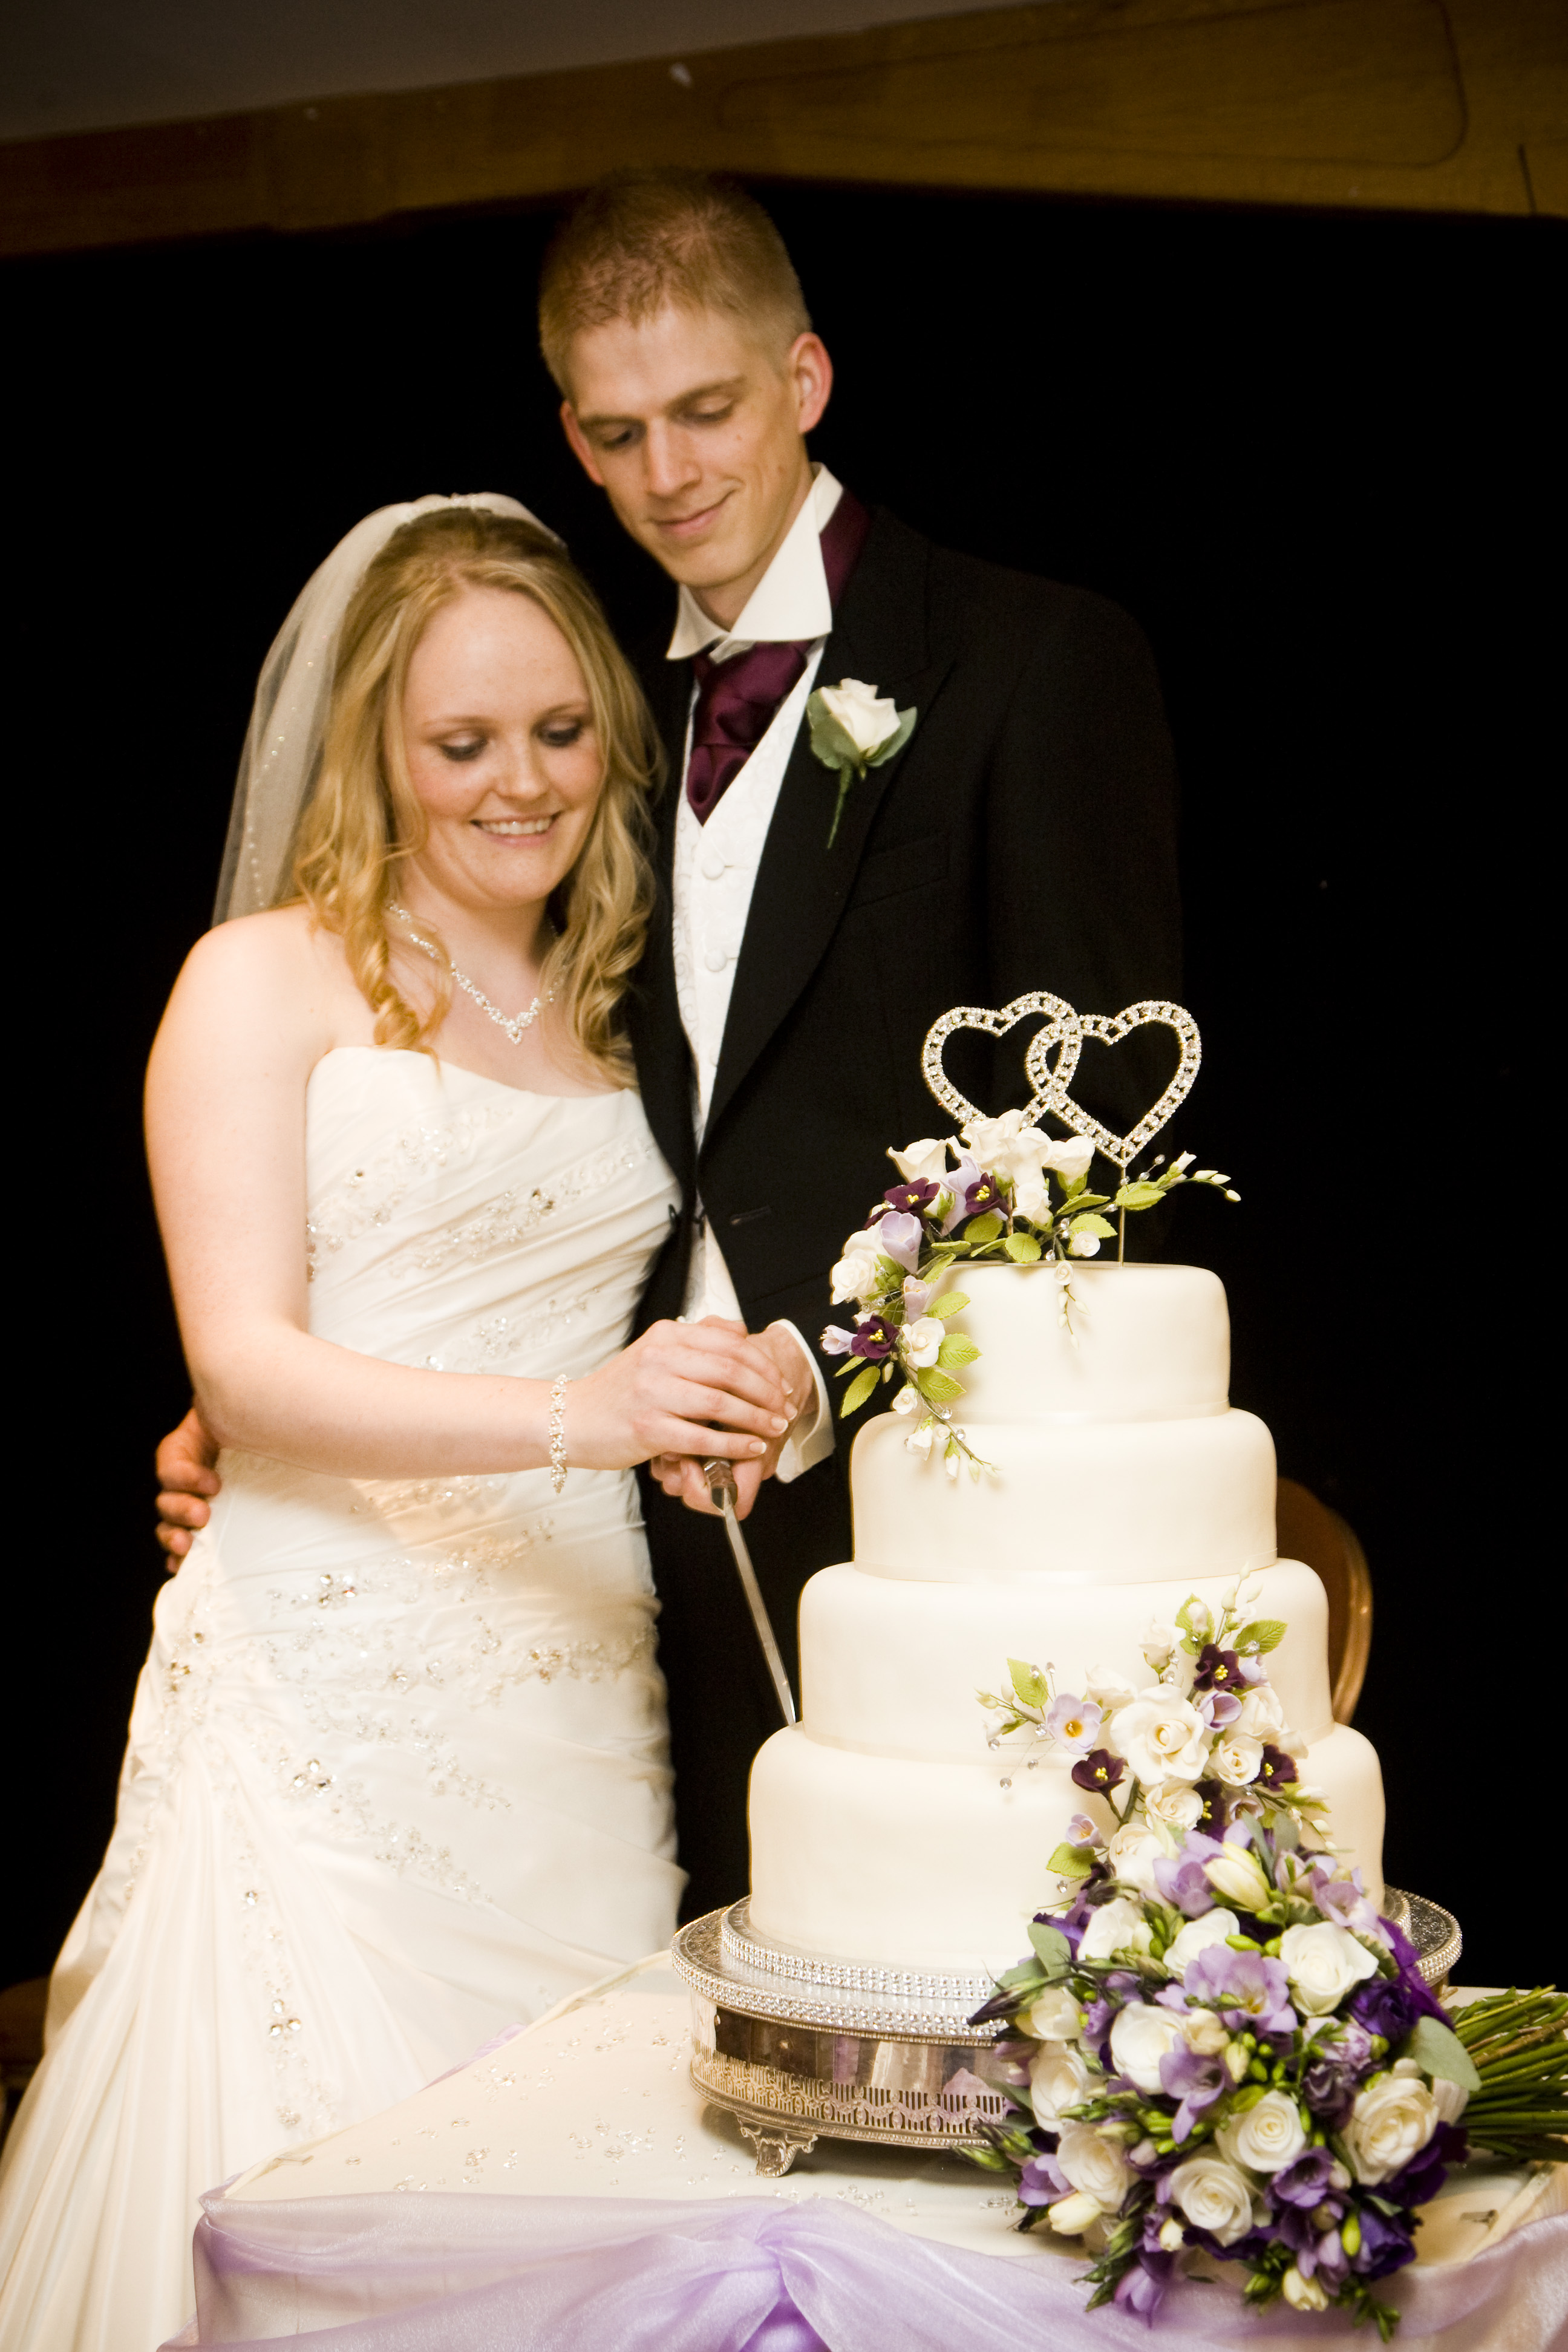 By Traditional Speeches And The Wedding Cake Is Cut And Shared